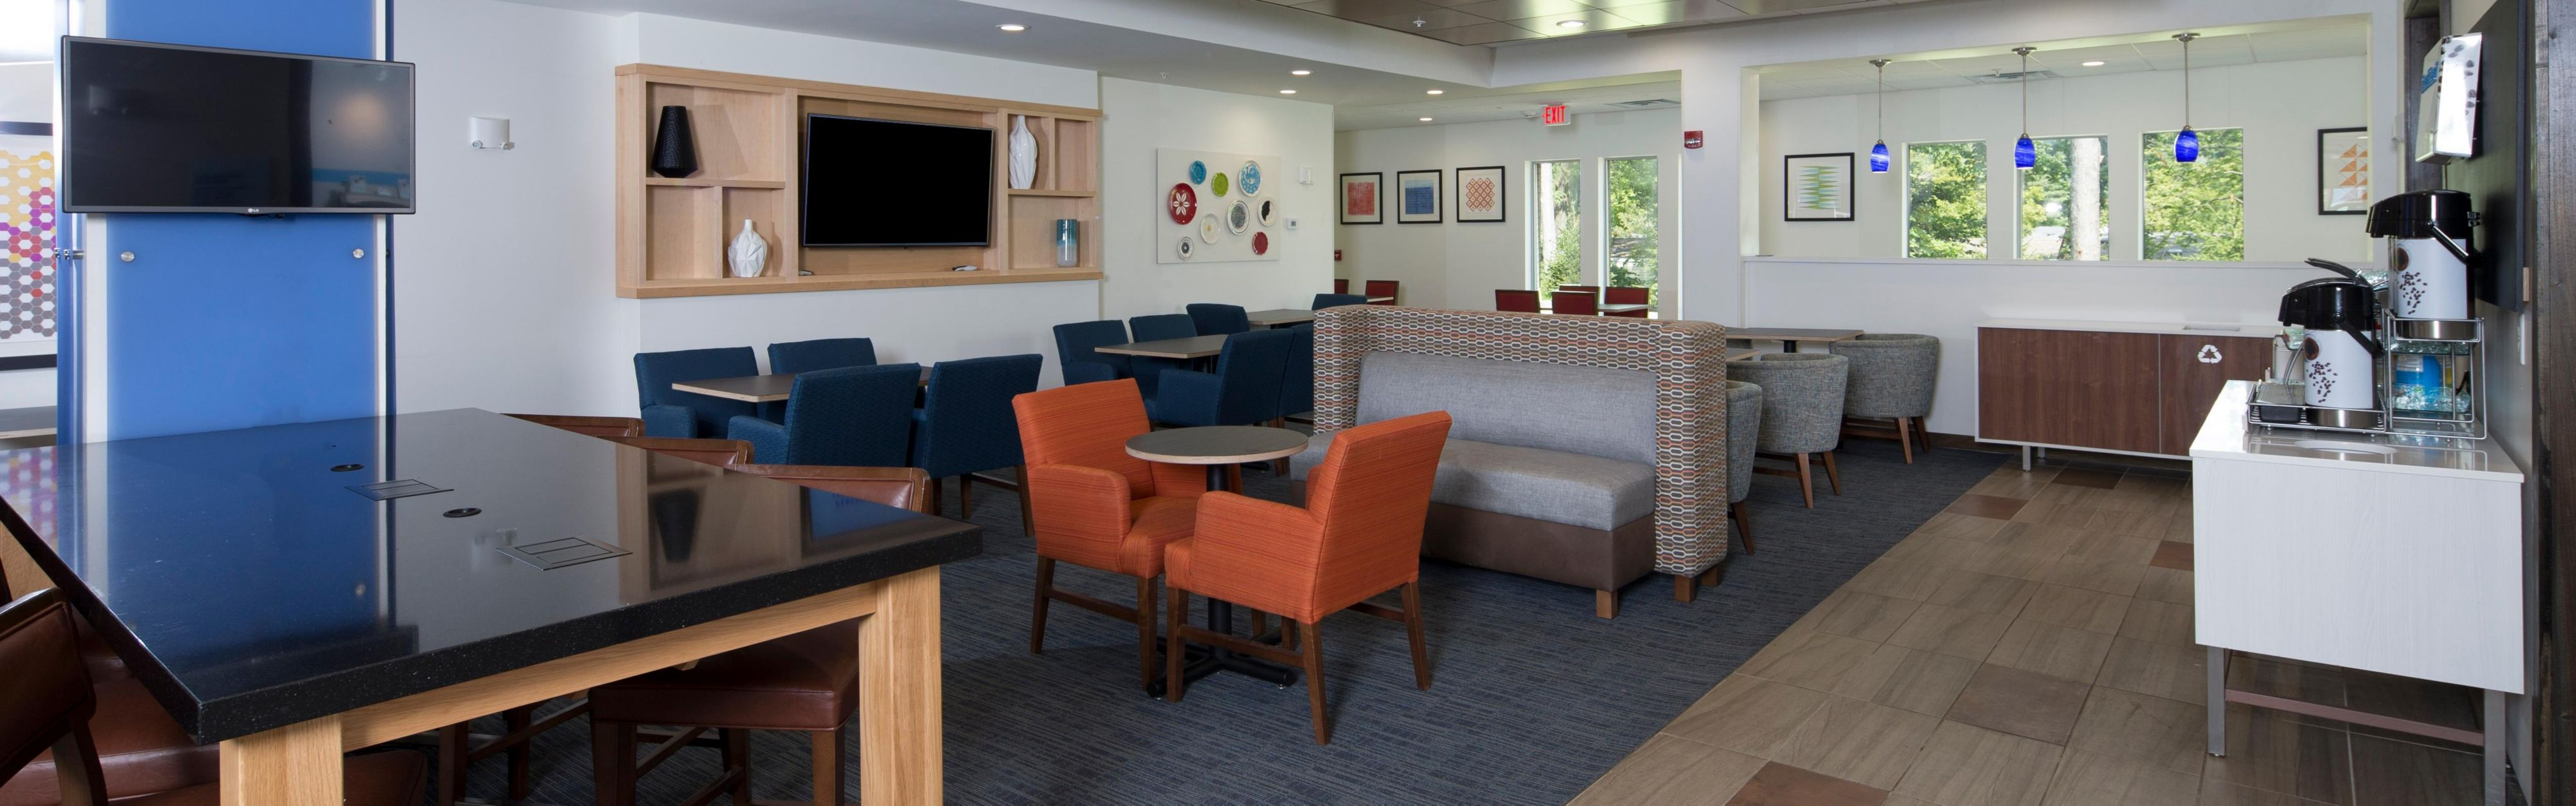 Holiday inn express suites la porte in laporte in 46350 for Laporte county phone book